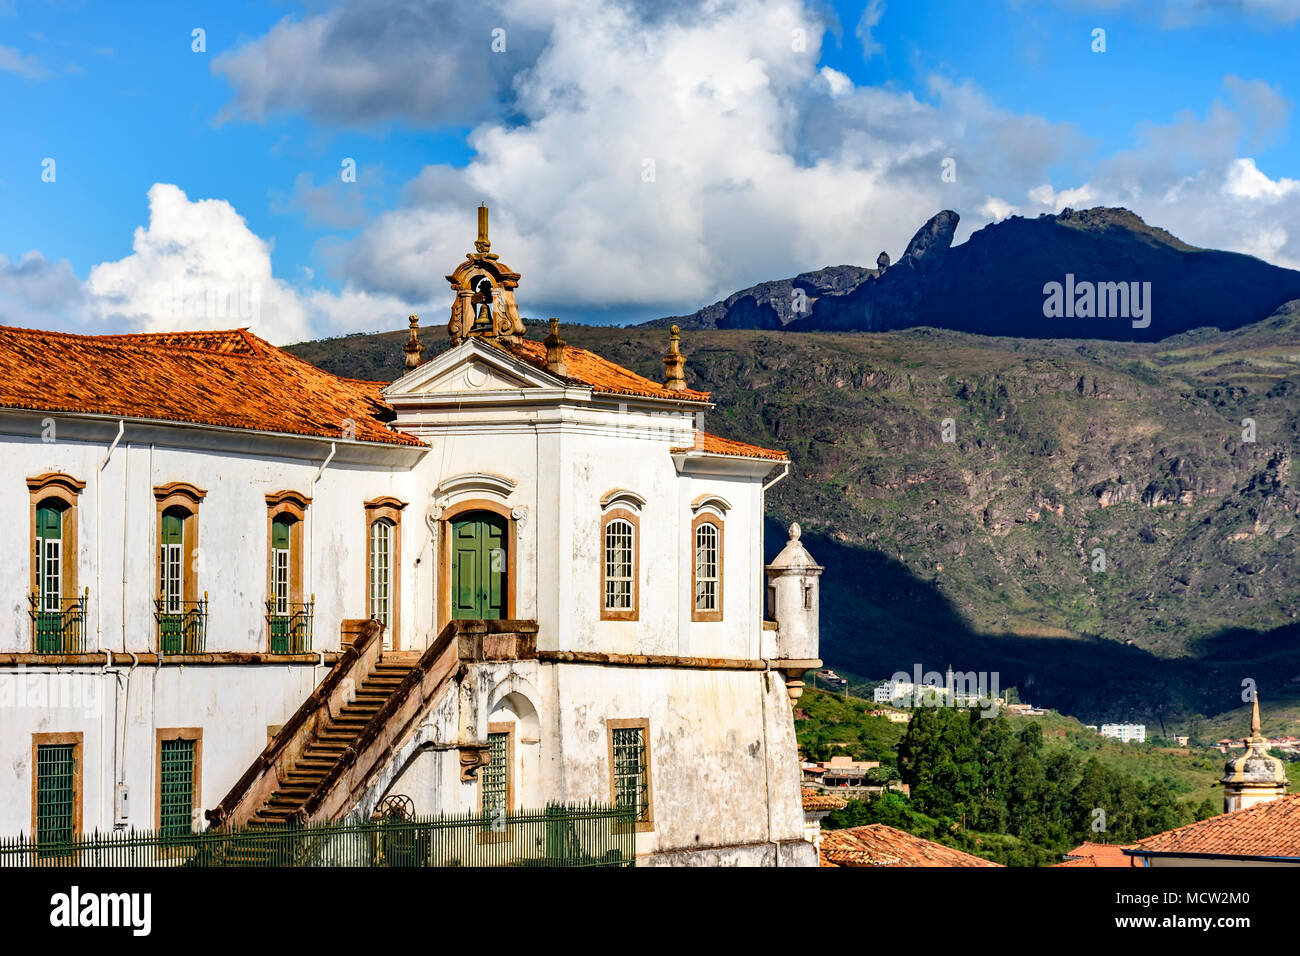 Top view of historic Ouro Preto city in Minas Gerais, Brazil with its famous churches and old buildings with hills in background - Stock Image